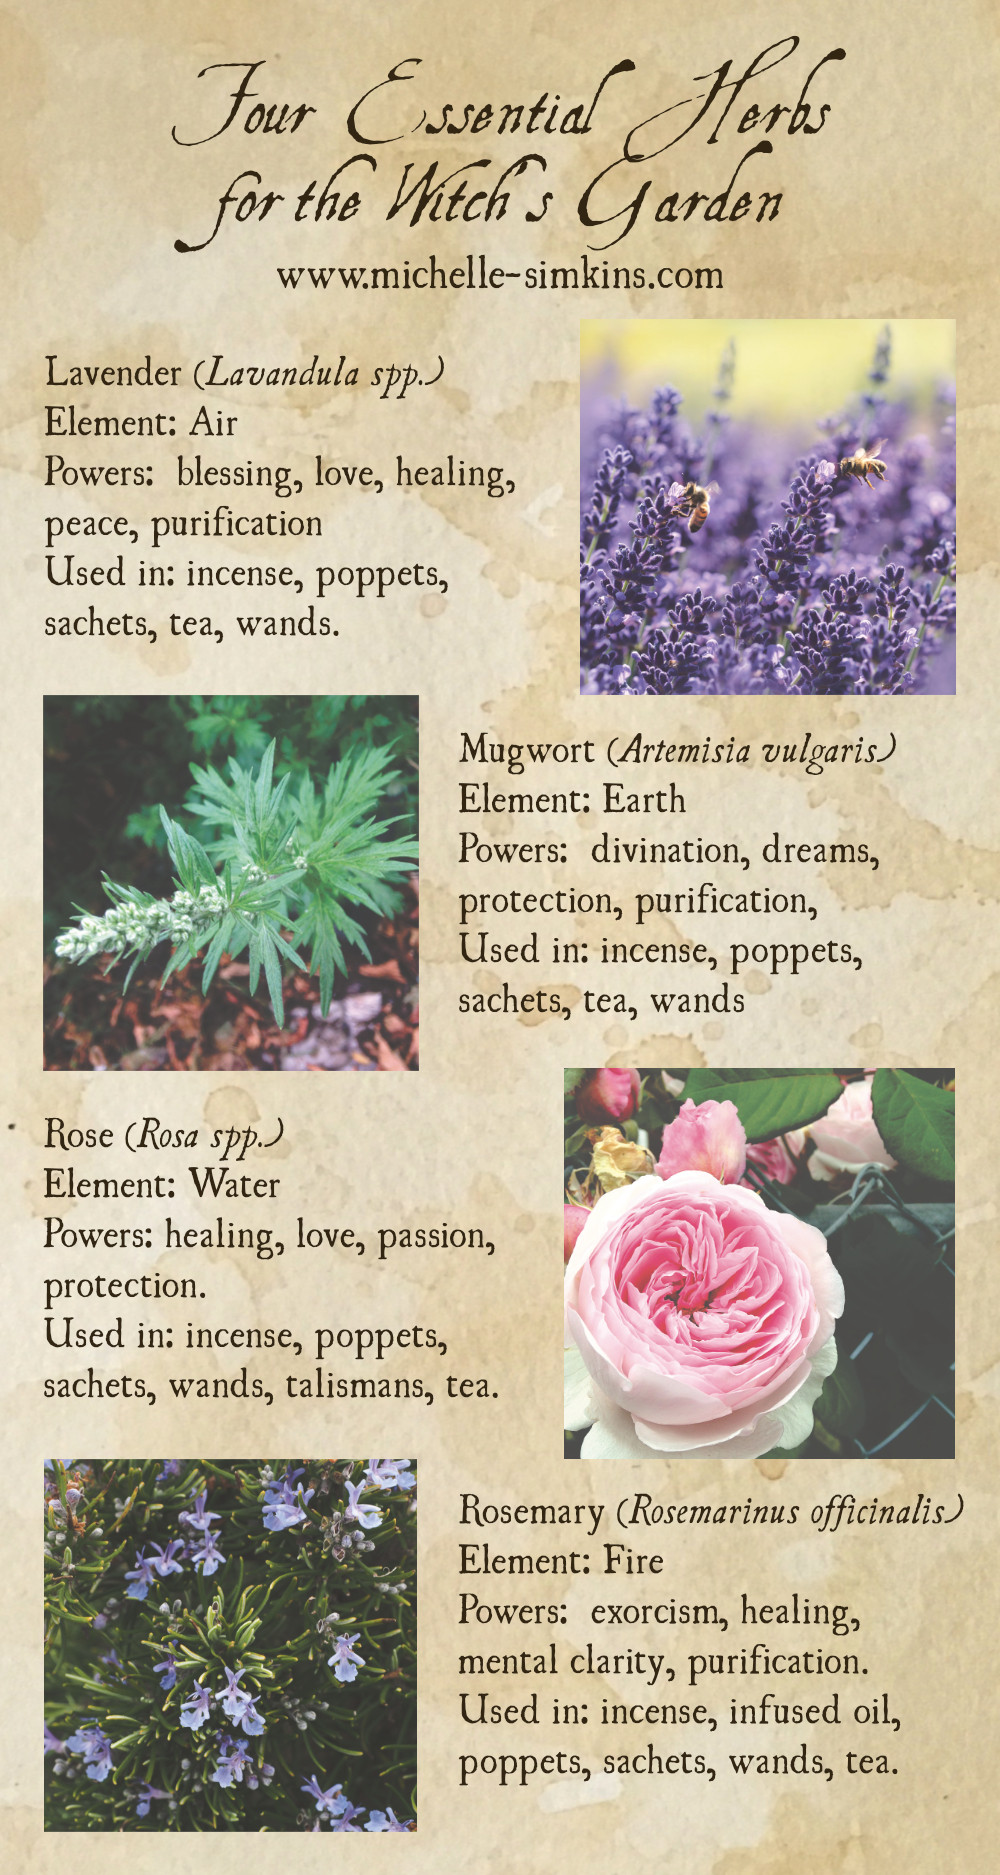 Four Essential Herbs for the Witch's Garden